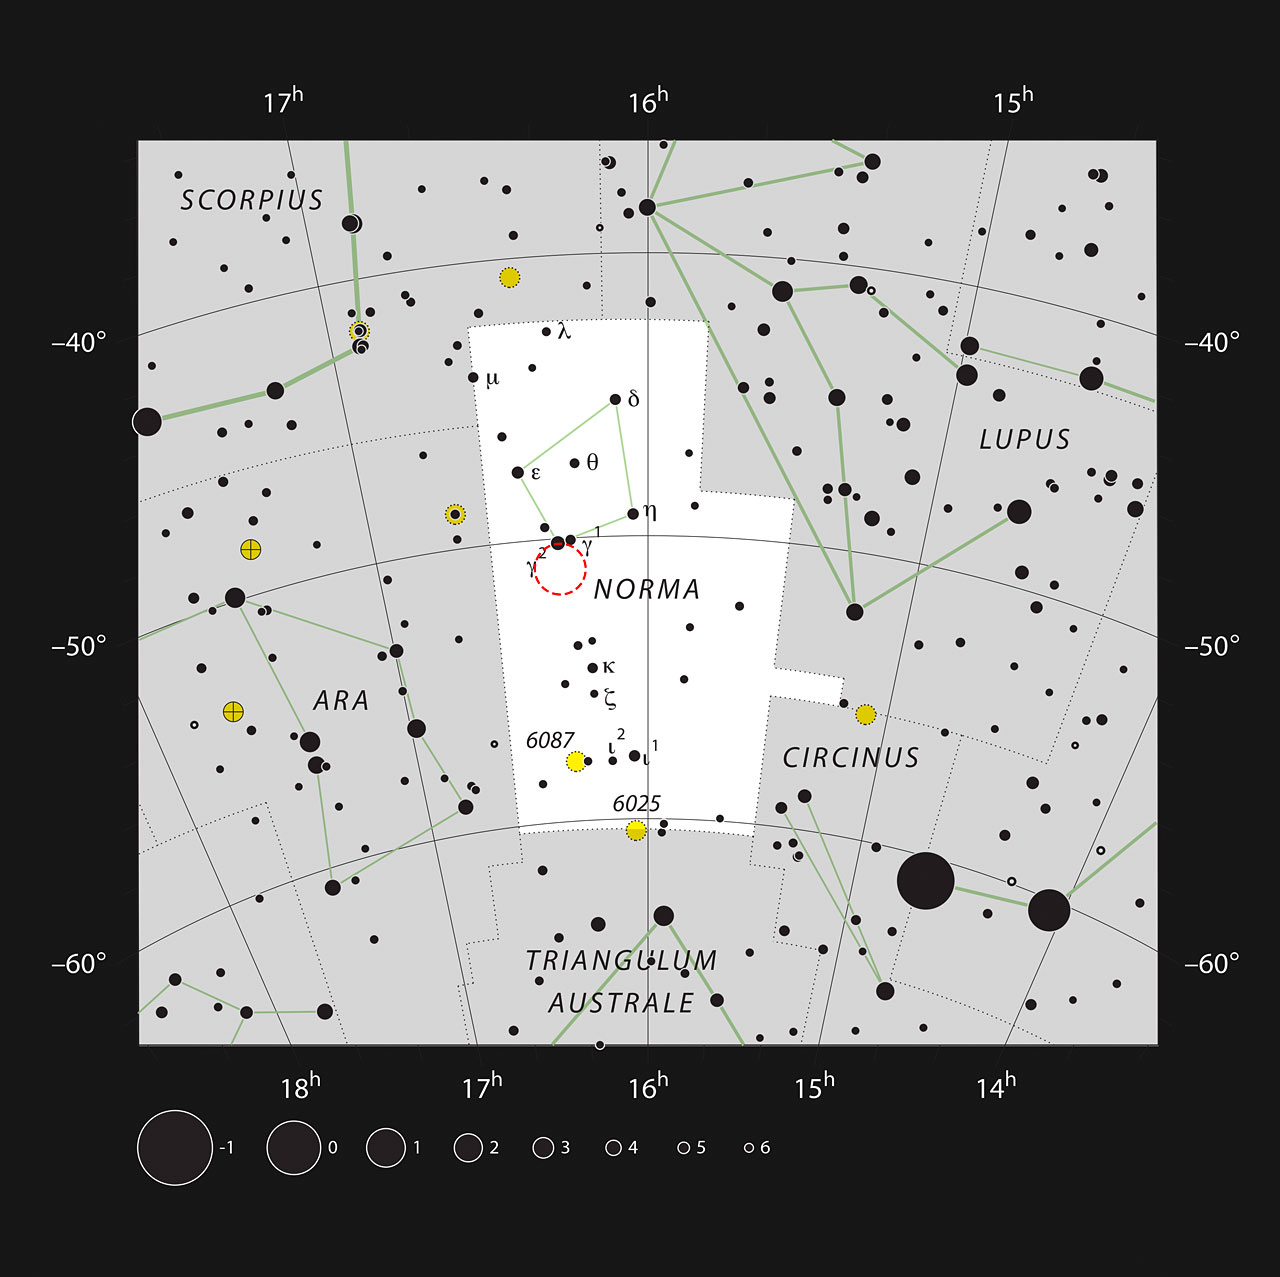 This chart shows the small and inconspicuous southern constellation of Norma (The Carpenter's Square). Most of the stars visible to the naked eye on a clear dark night are shown. This region is in the plane of the Milky Way and hosts the huge star formation region RCW 106 (marked with a red circle), which is mostly hidden behind thick dust clouds and not visible in a small telescope. - Image Credit:  ESO/IAU and Sky & Telescope